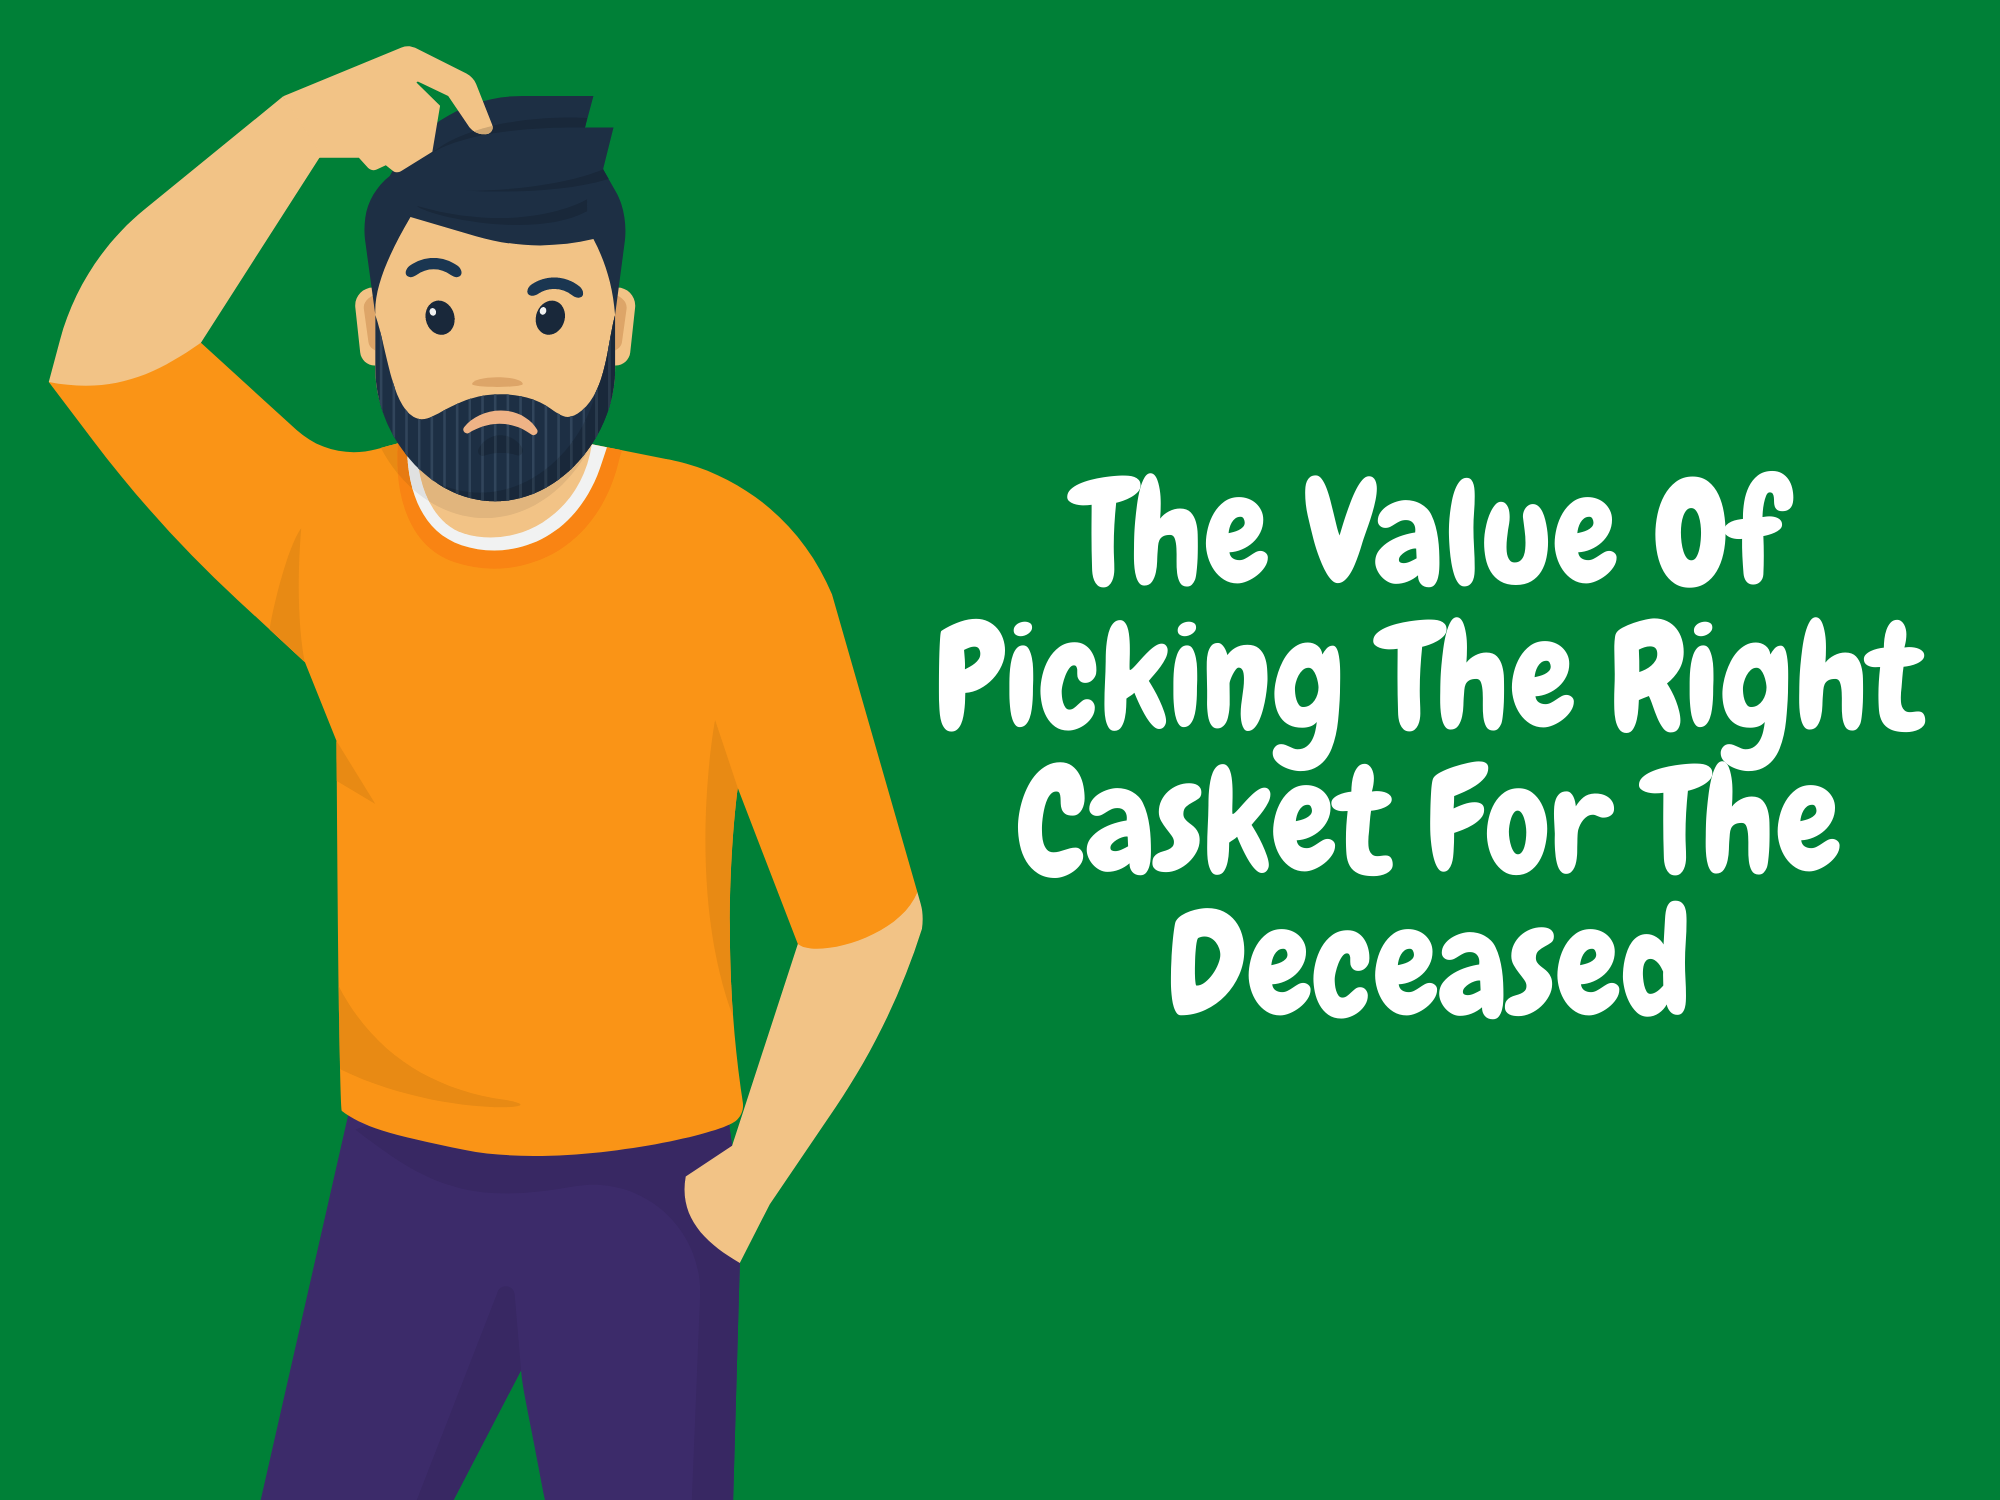 The-Value-Of-Picking-The-Right-Casket-For-The-Deceased